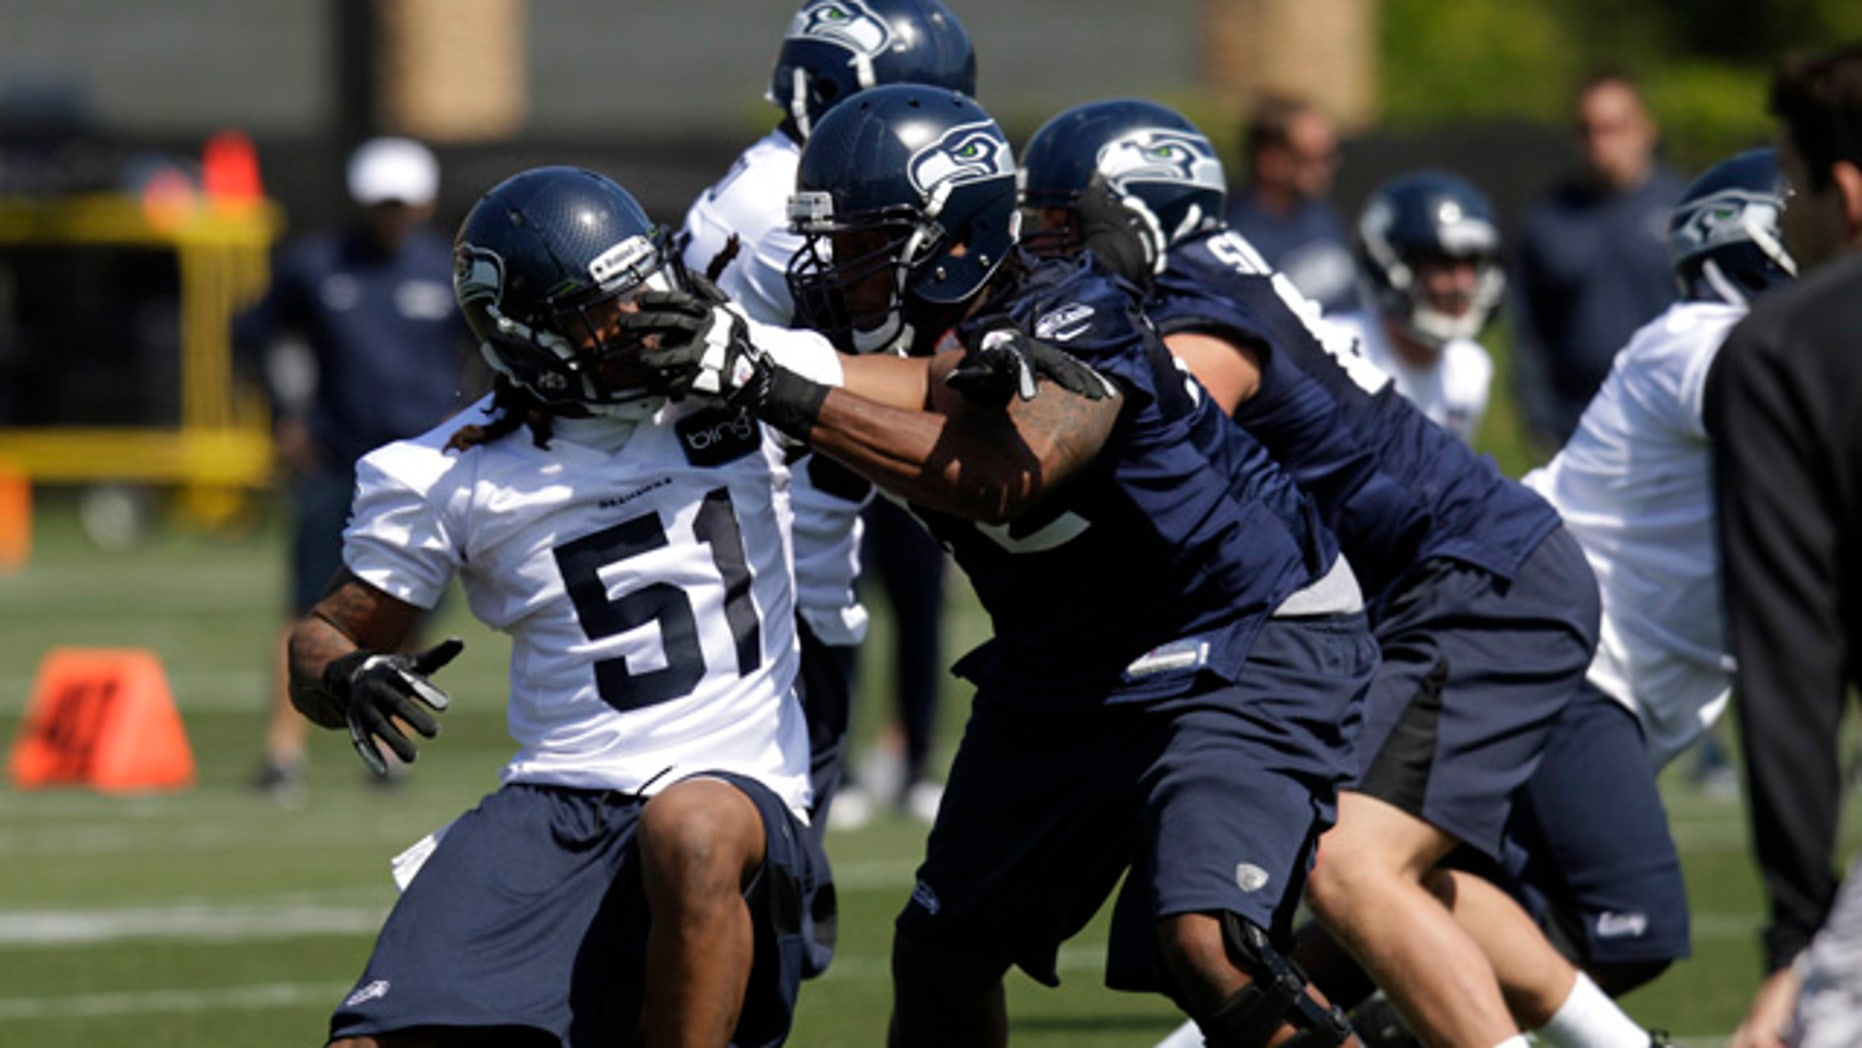 May 11, 2012: Bruce Irvin (51), the Seattle Seahawks' top NFL draft pick, tangles with Seahawks tackle Alex Barron, front right, during an NFL football rookie minicamp in Renton, Wash. (AP/Ted S. Warren)